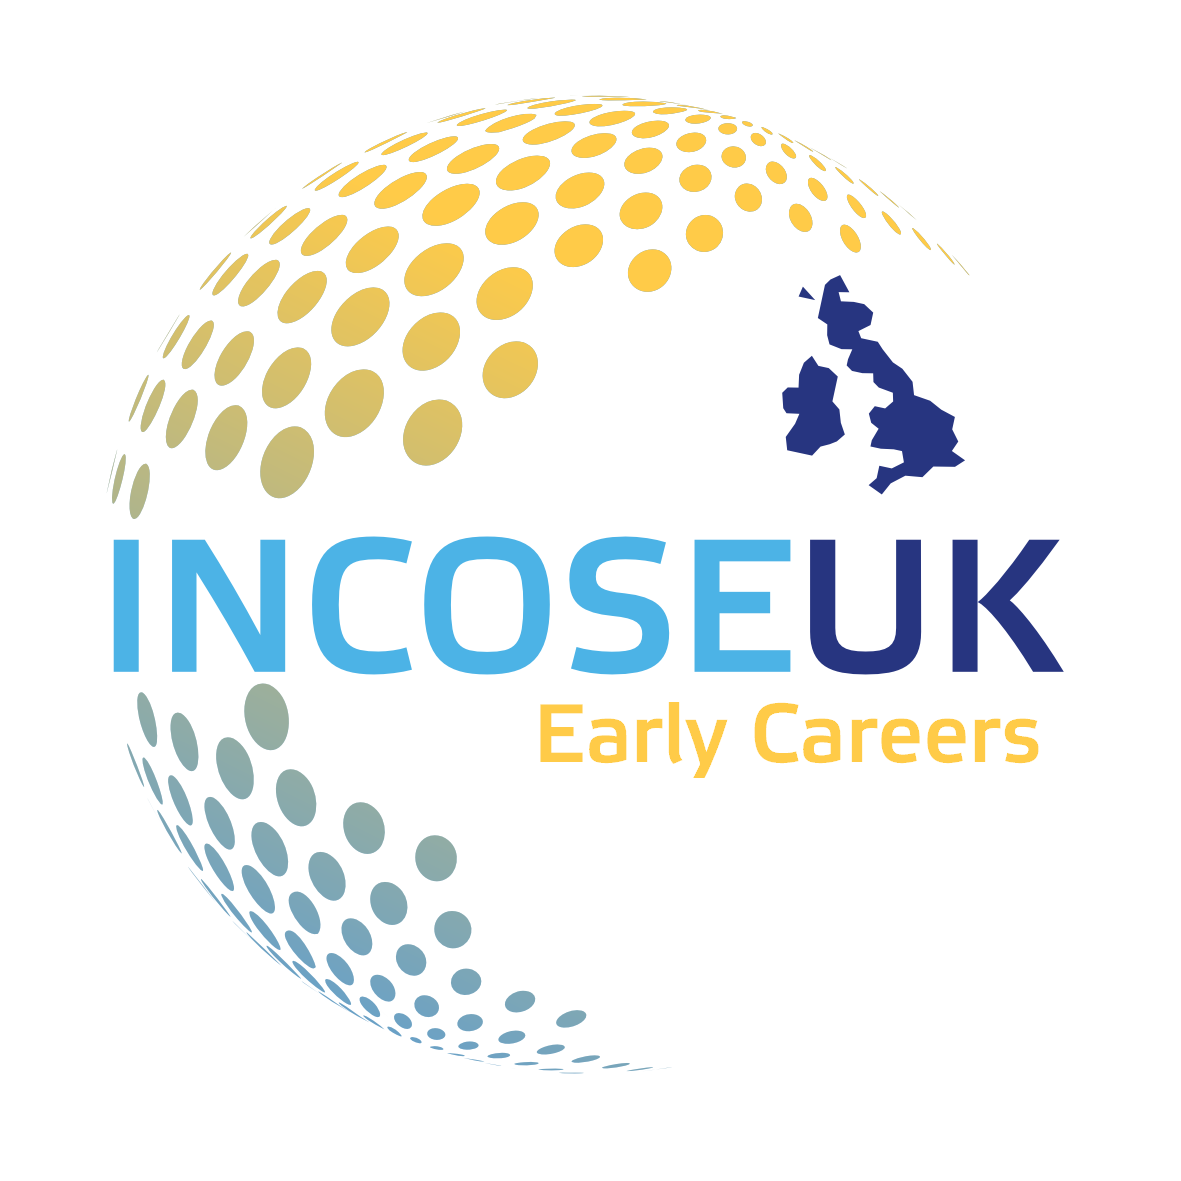 INCOSE UK ECF - Systems Engineering in Action